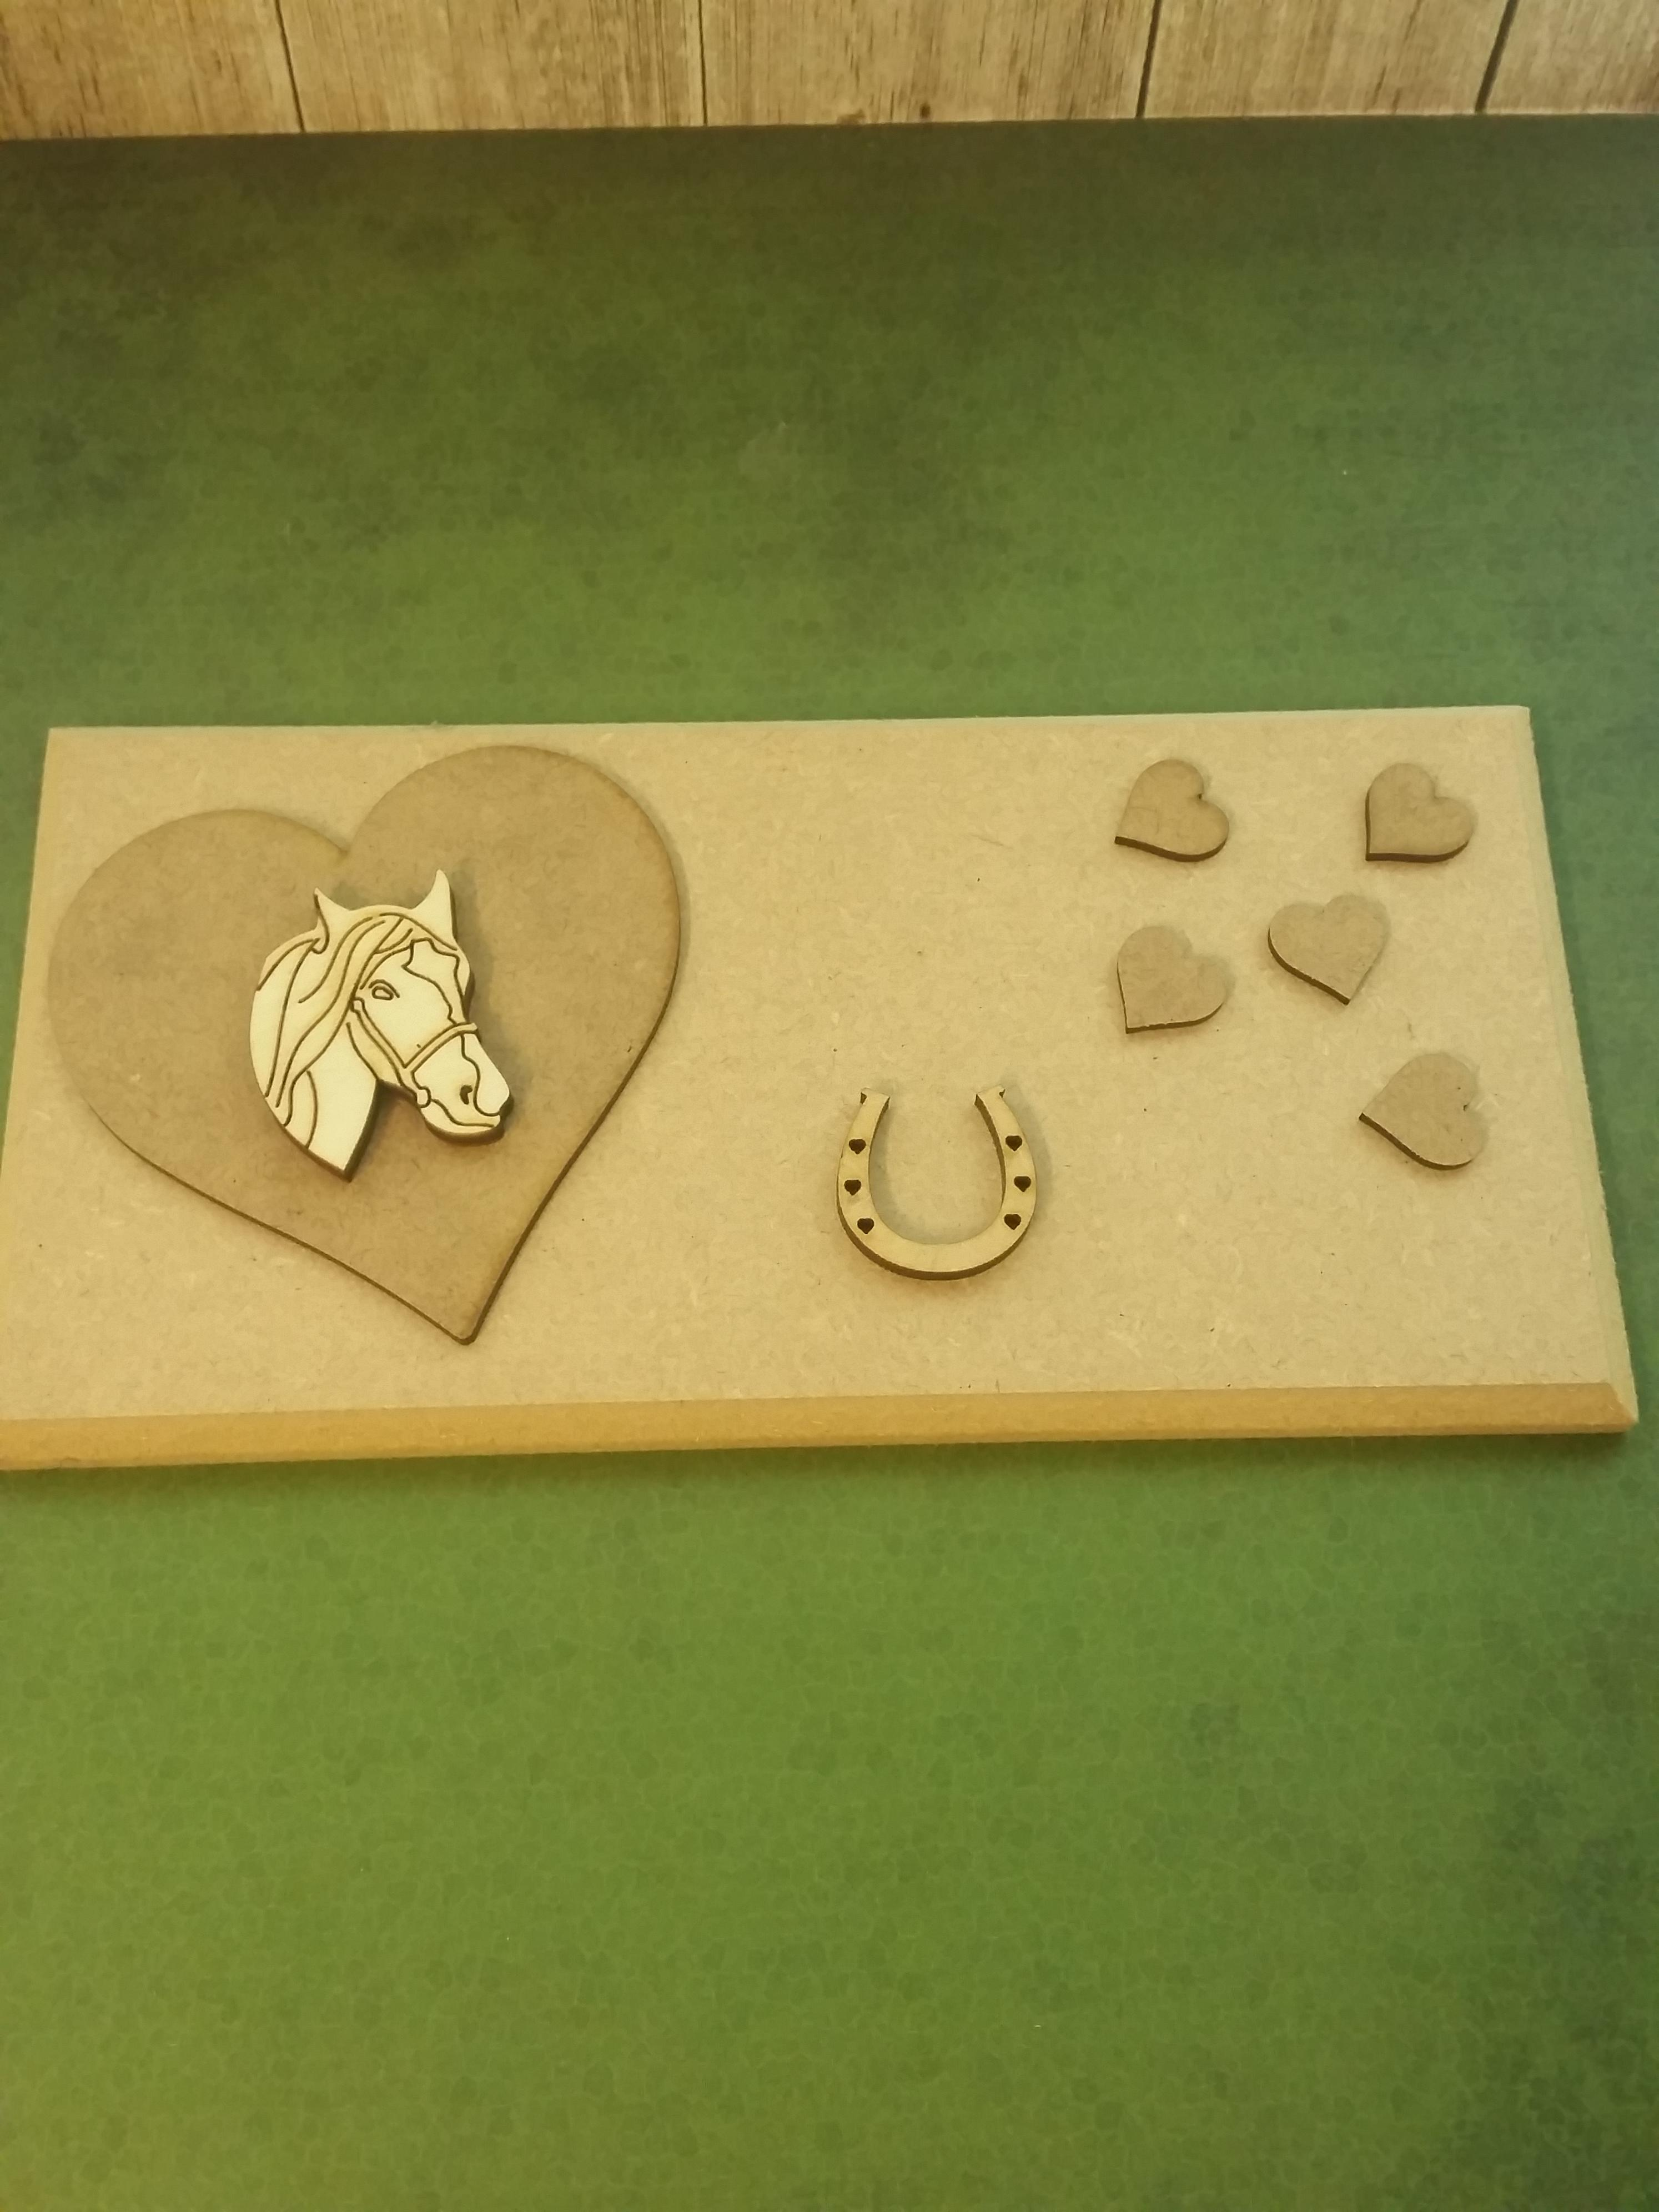 mdf and ply wooden shapes parts to make a sign